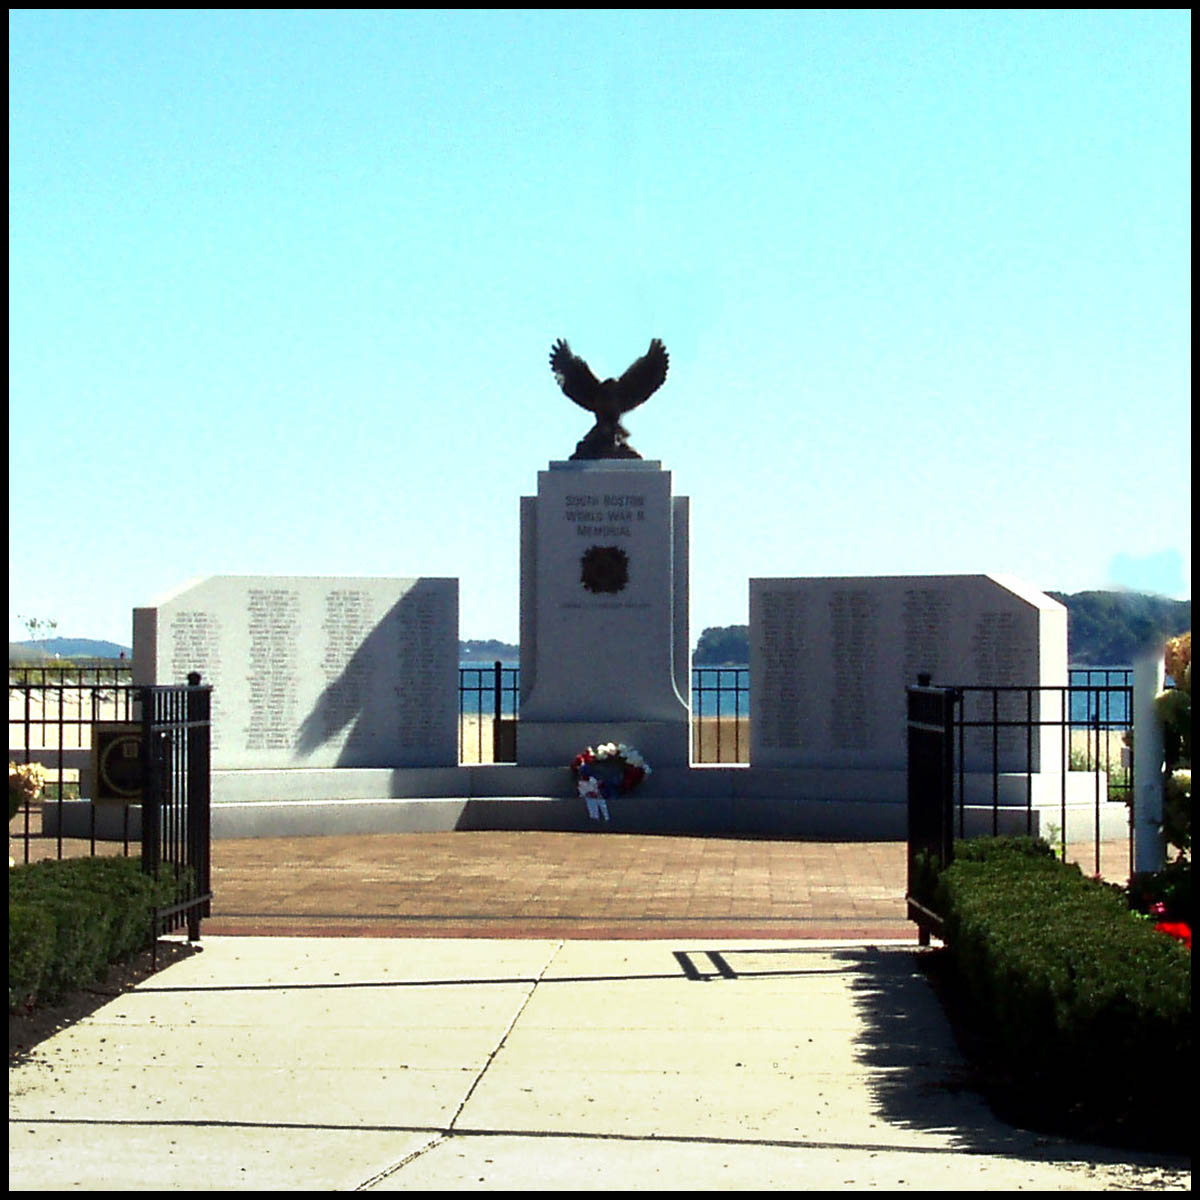 photo of granite monument with bronze eagle sculpture atop central piece in plaza